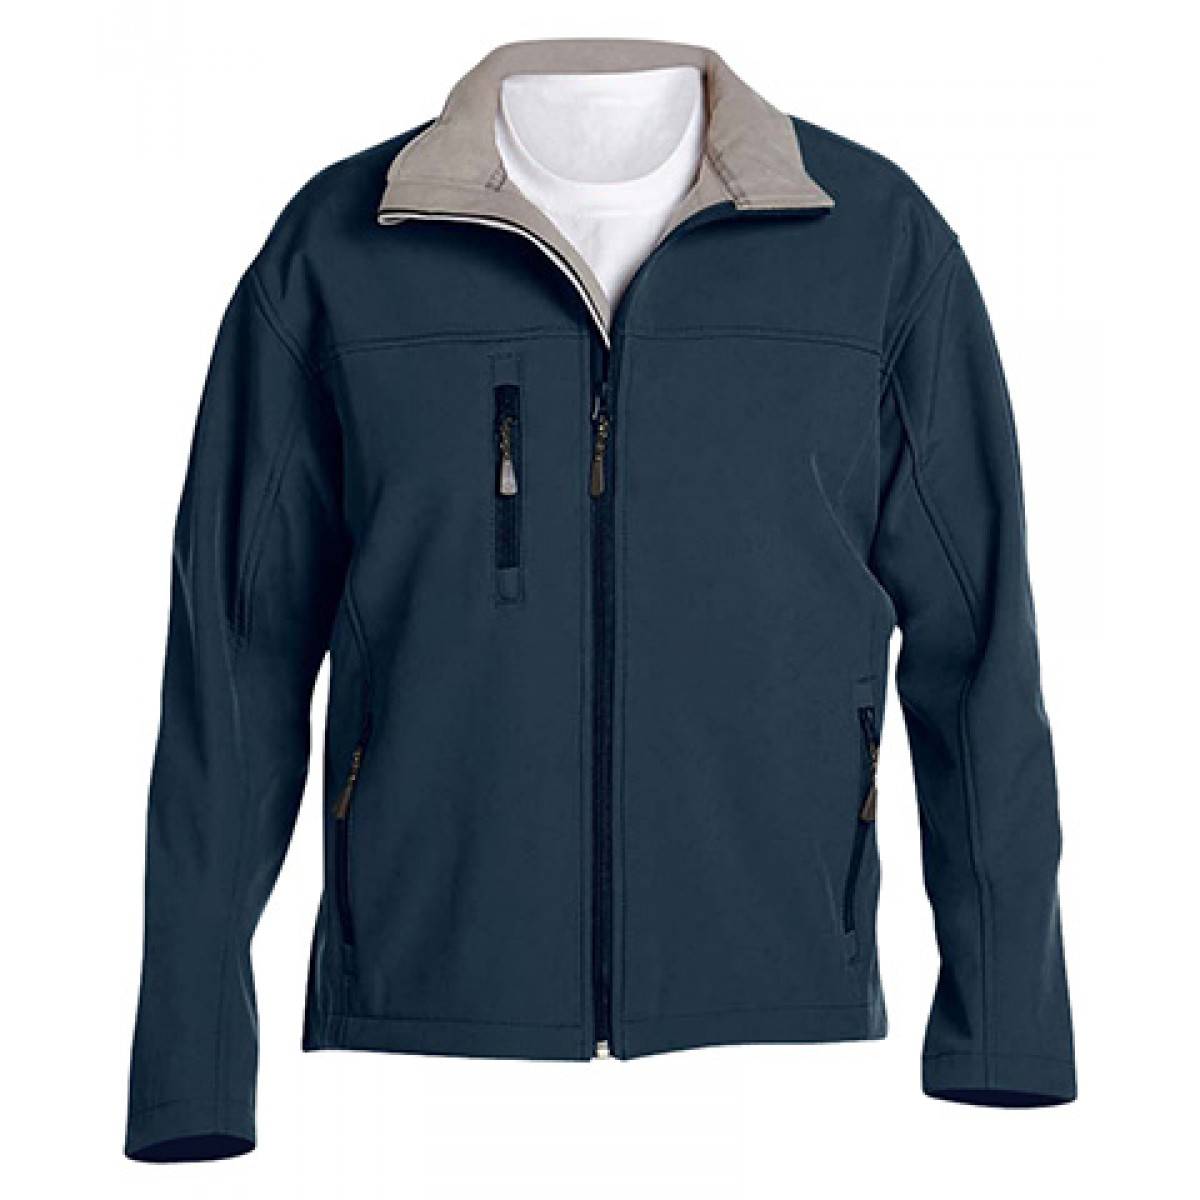 Men's Soft Shell Jacket-Navy-4XL